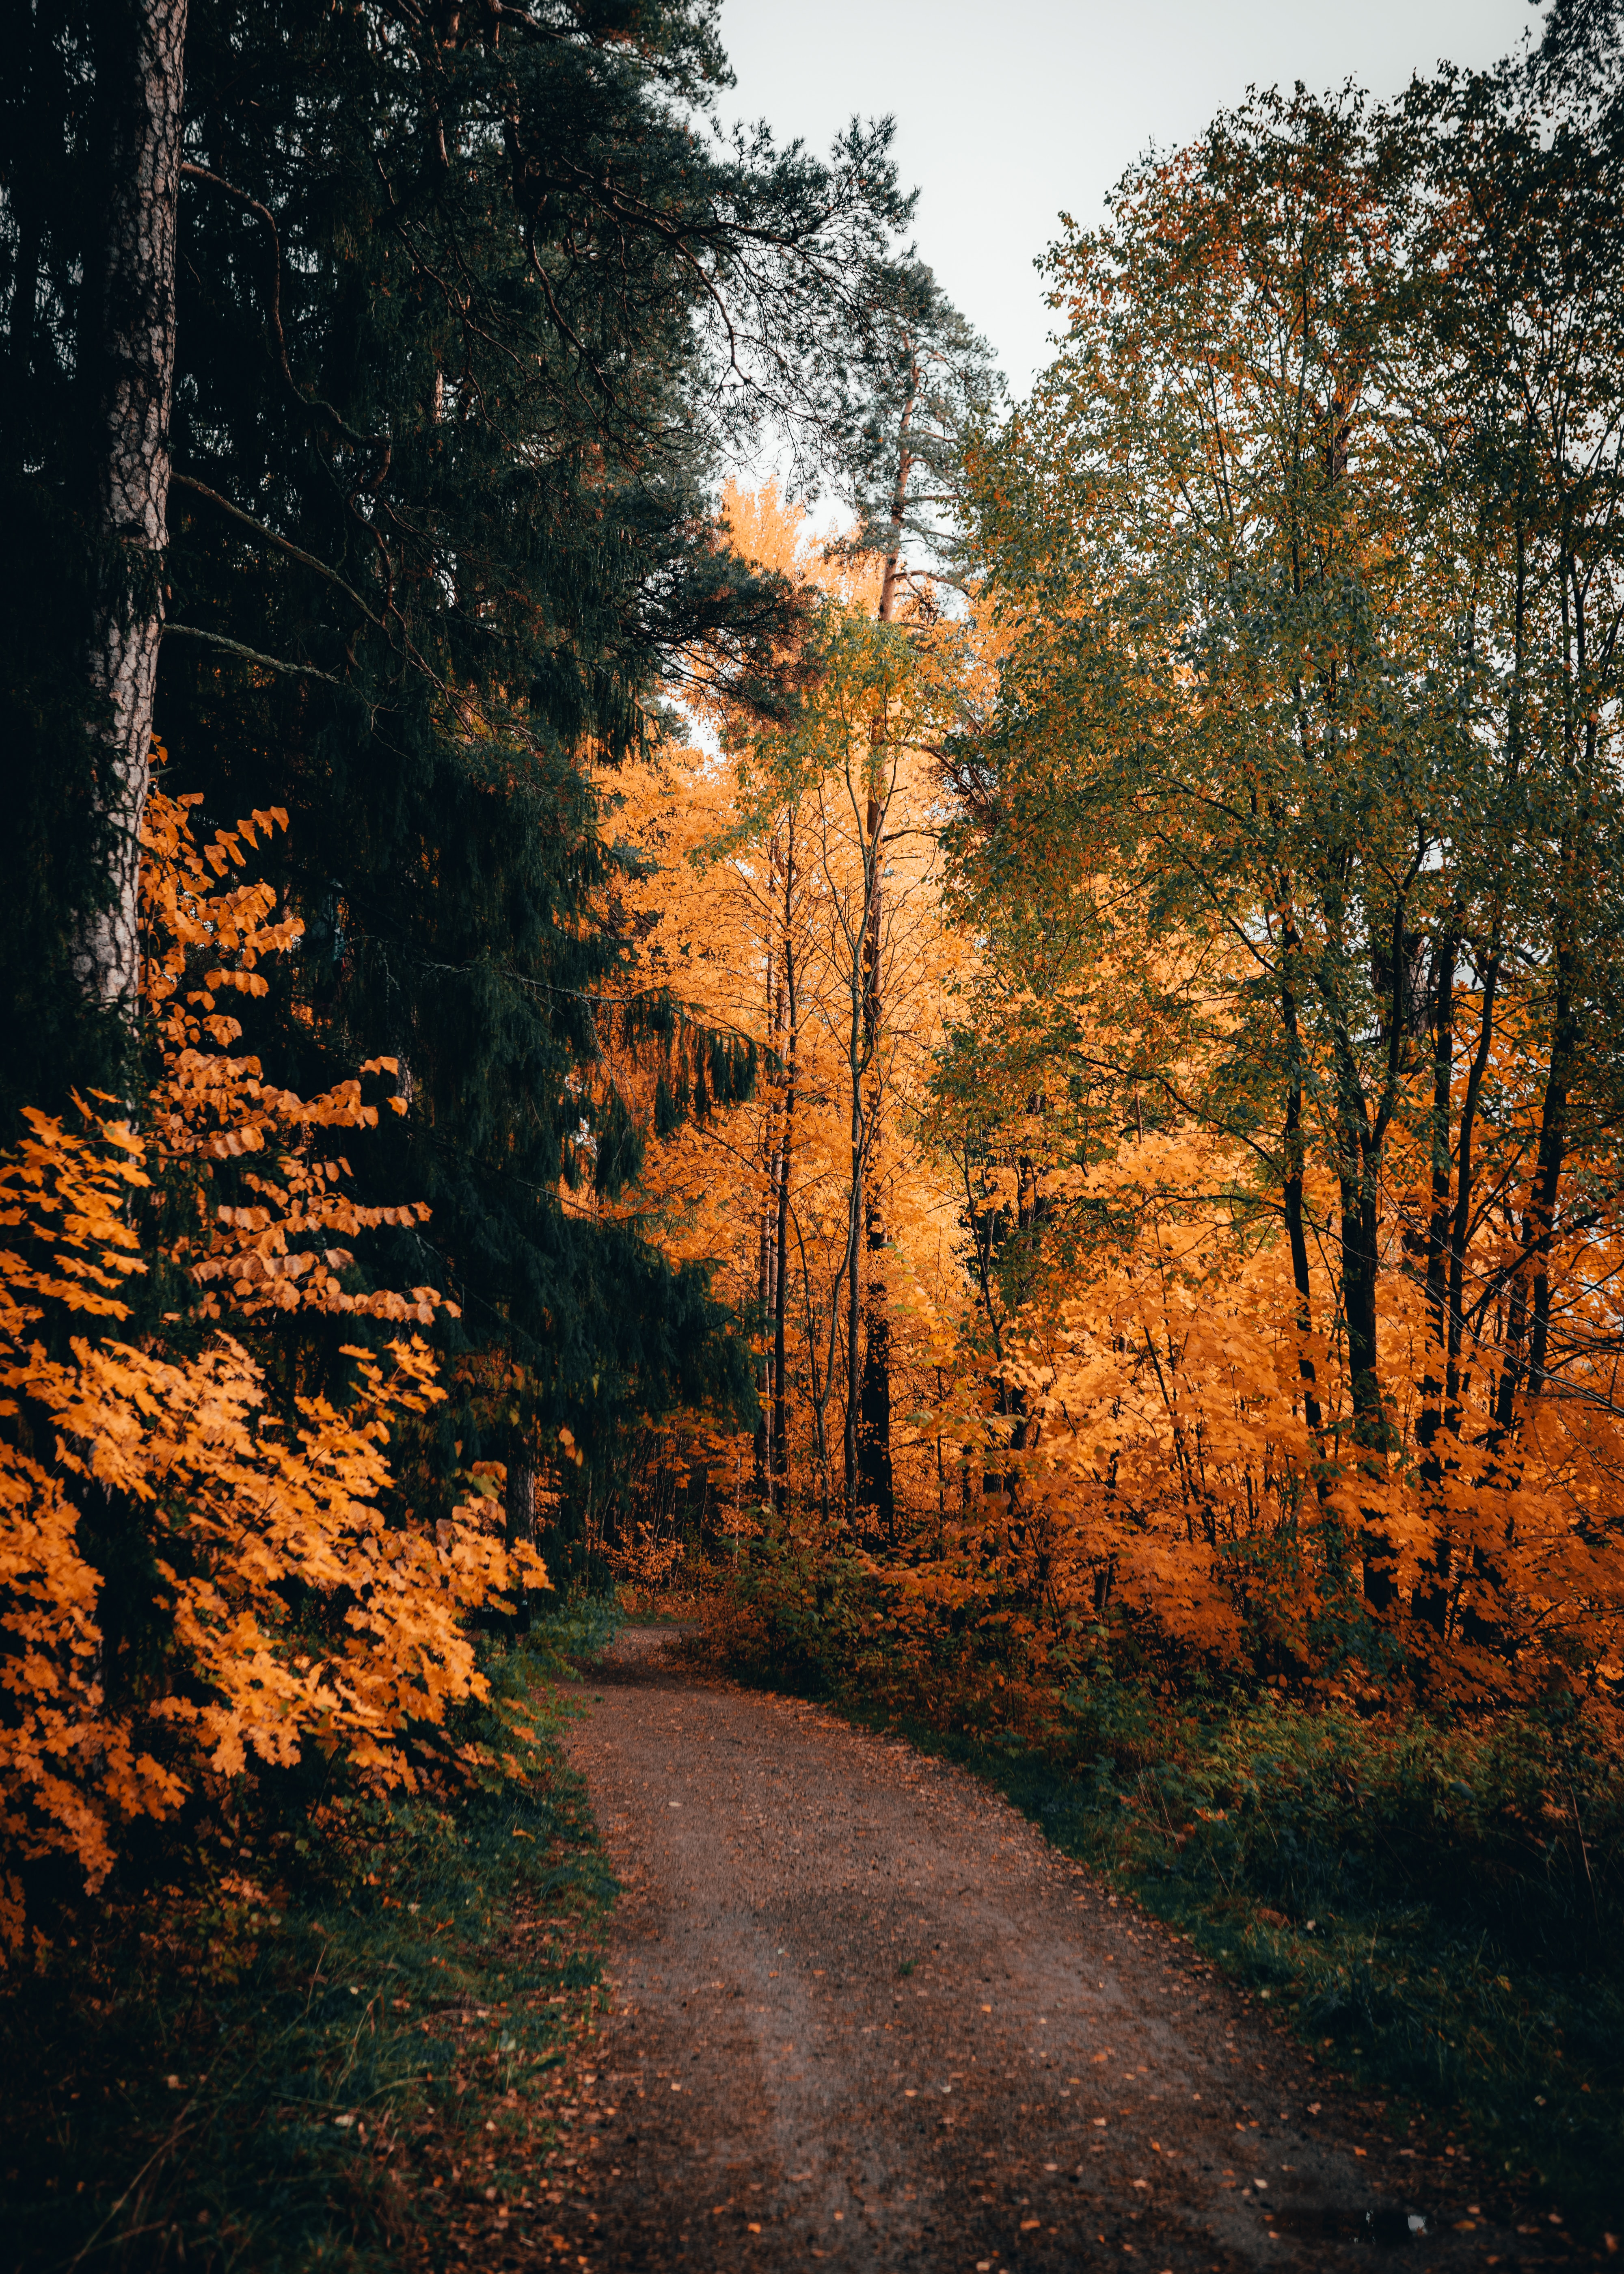 118609 download wallpaper Nature, Trees, Autumn, Forest, Path screensavers and pictures for free